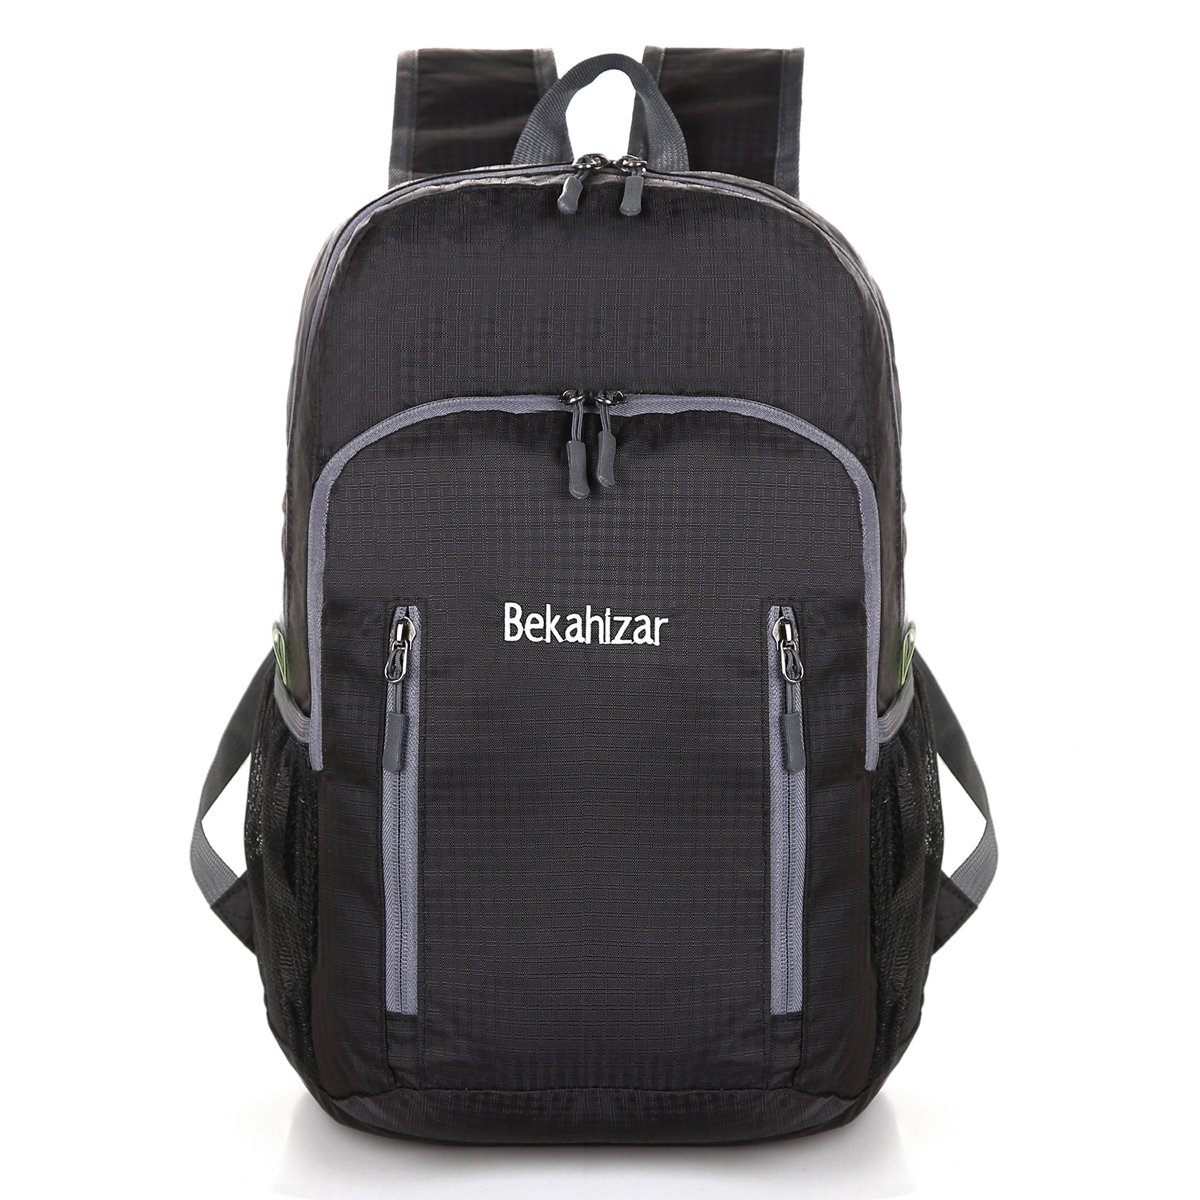 Bekahizar 20L Ultra Lightweight Backpack Foldable Hiking Daypack Water Resistant Travel Day Bag Packable for Kids Men Women Outdoor Sports Camping Day Trips Walking Cycling (Black)